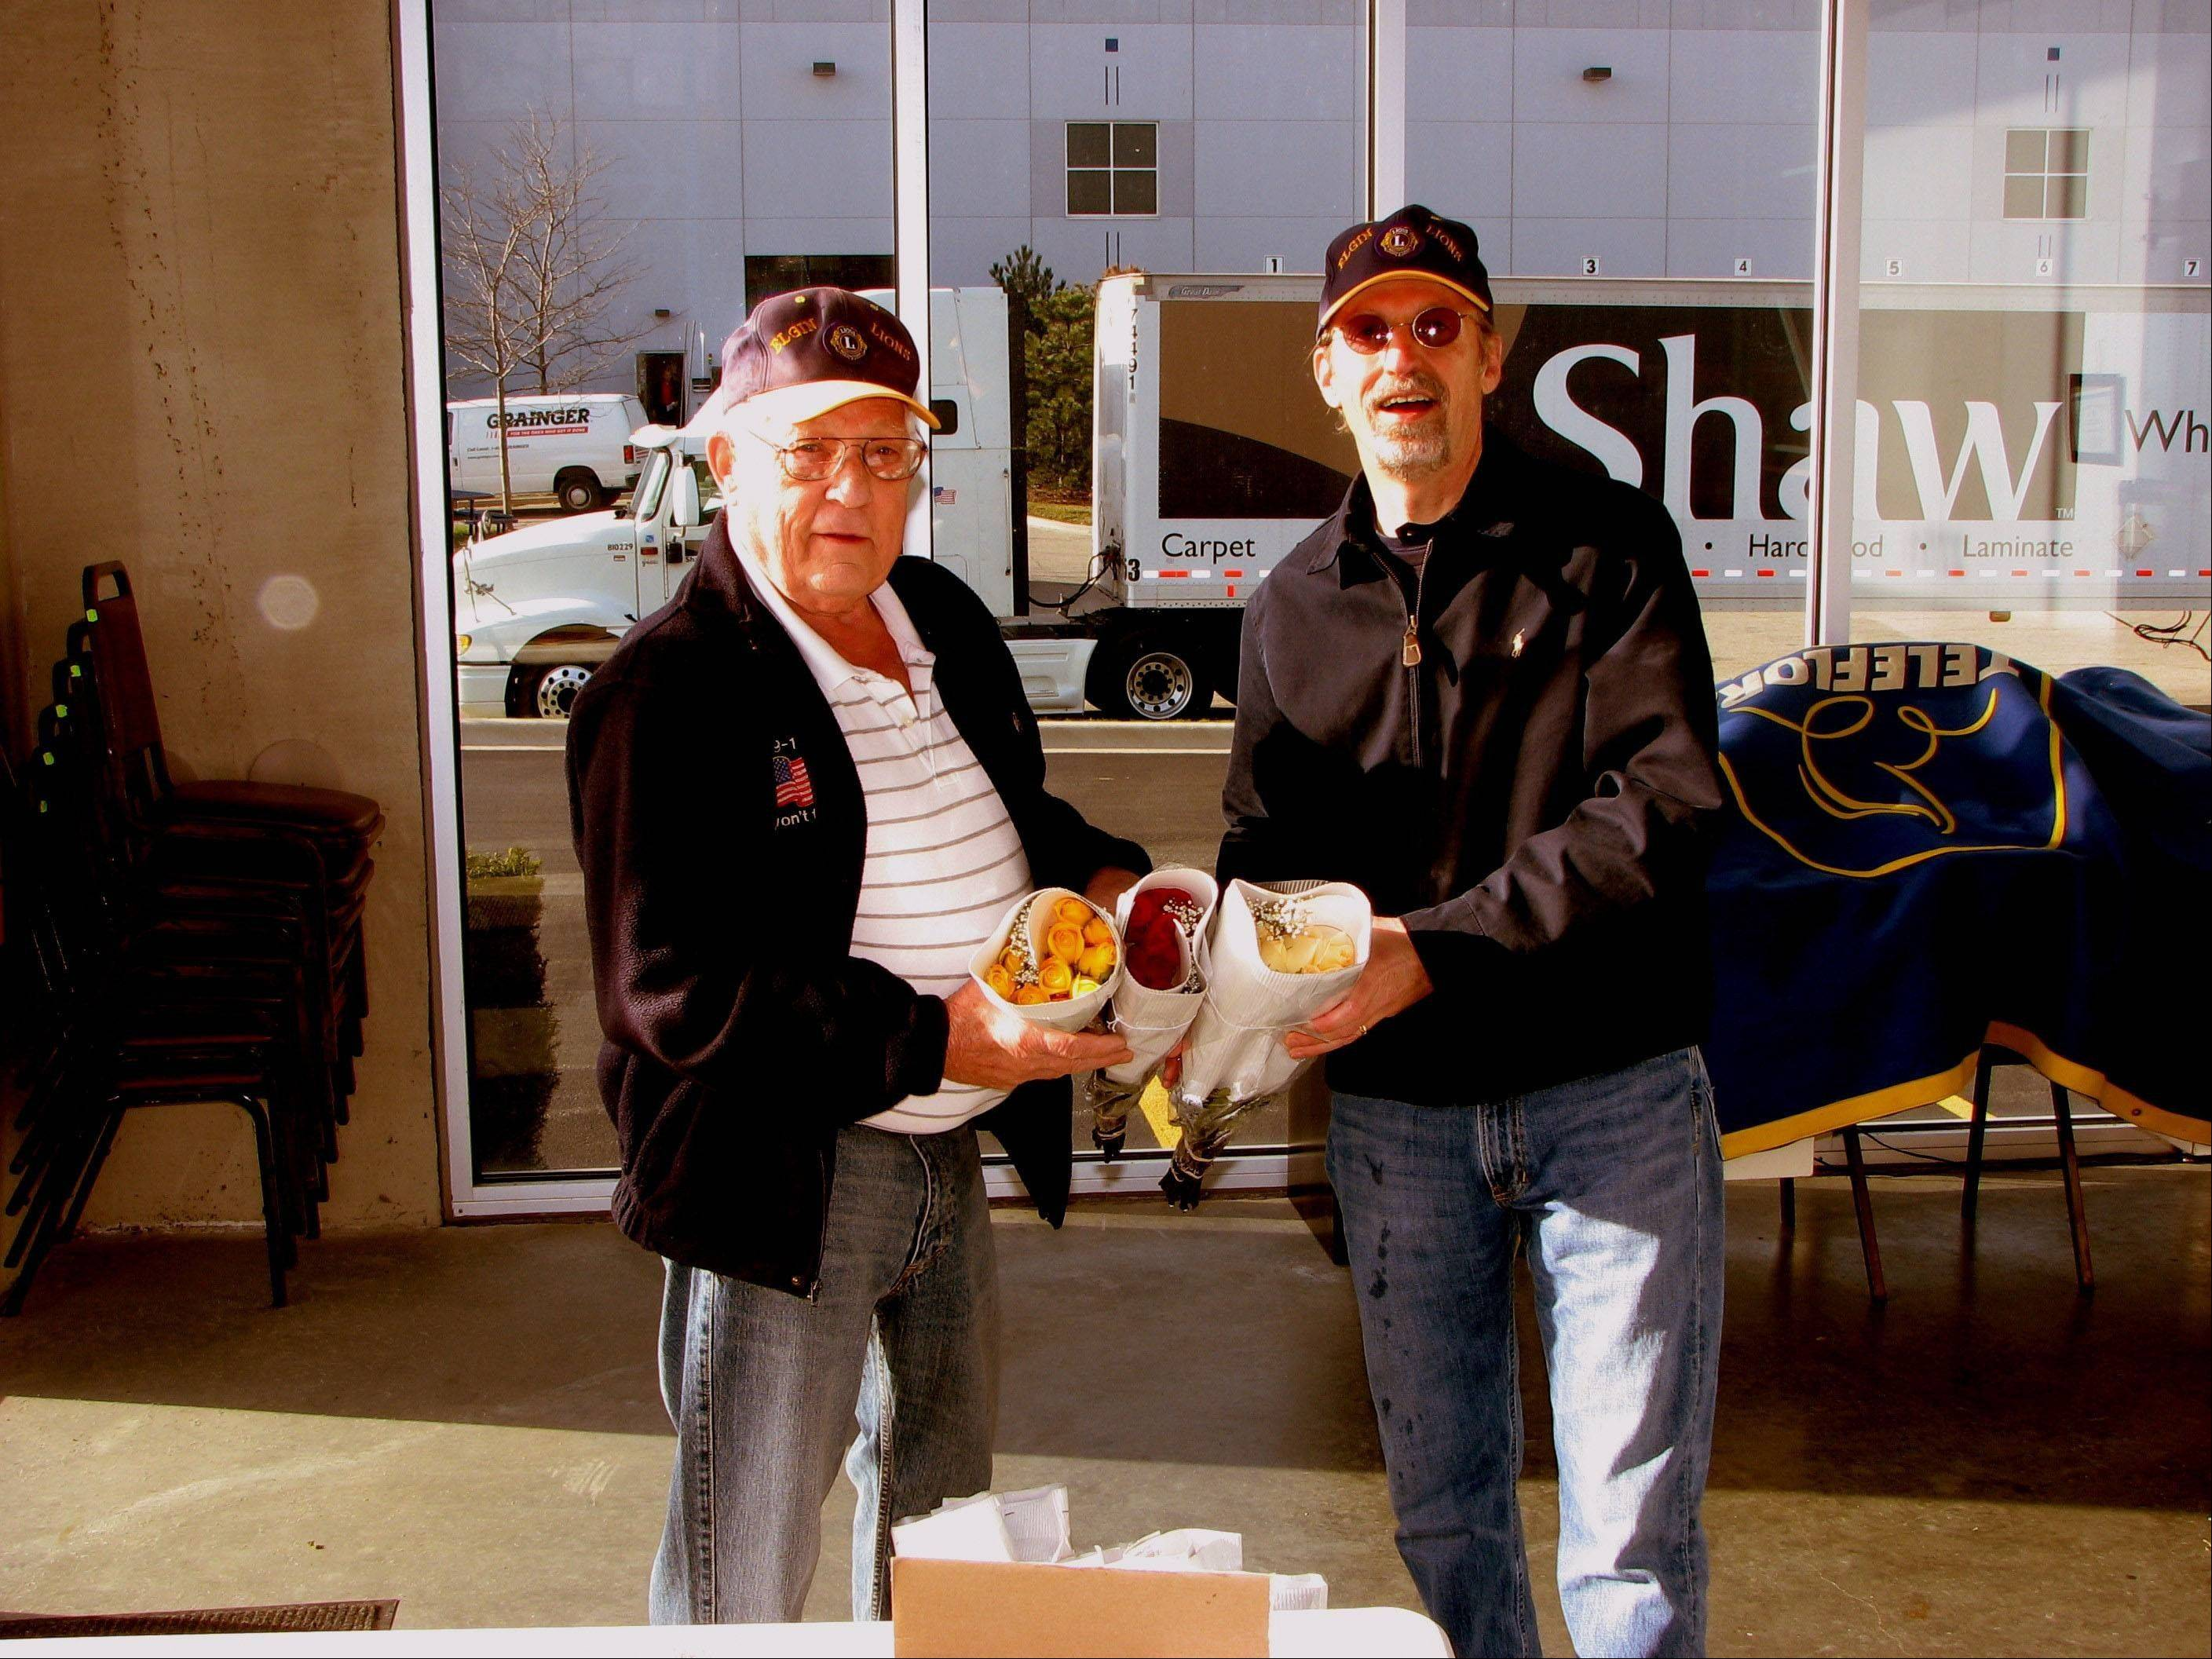 Elgin Lions Club members Chuck Merrell and Ed Bates show off roses to be delivered as part of the annual Rose Day fundraiser.